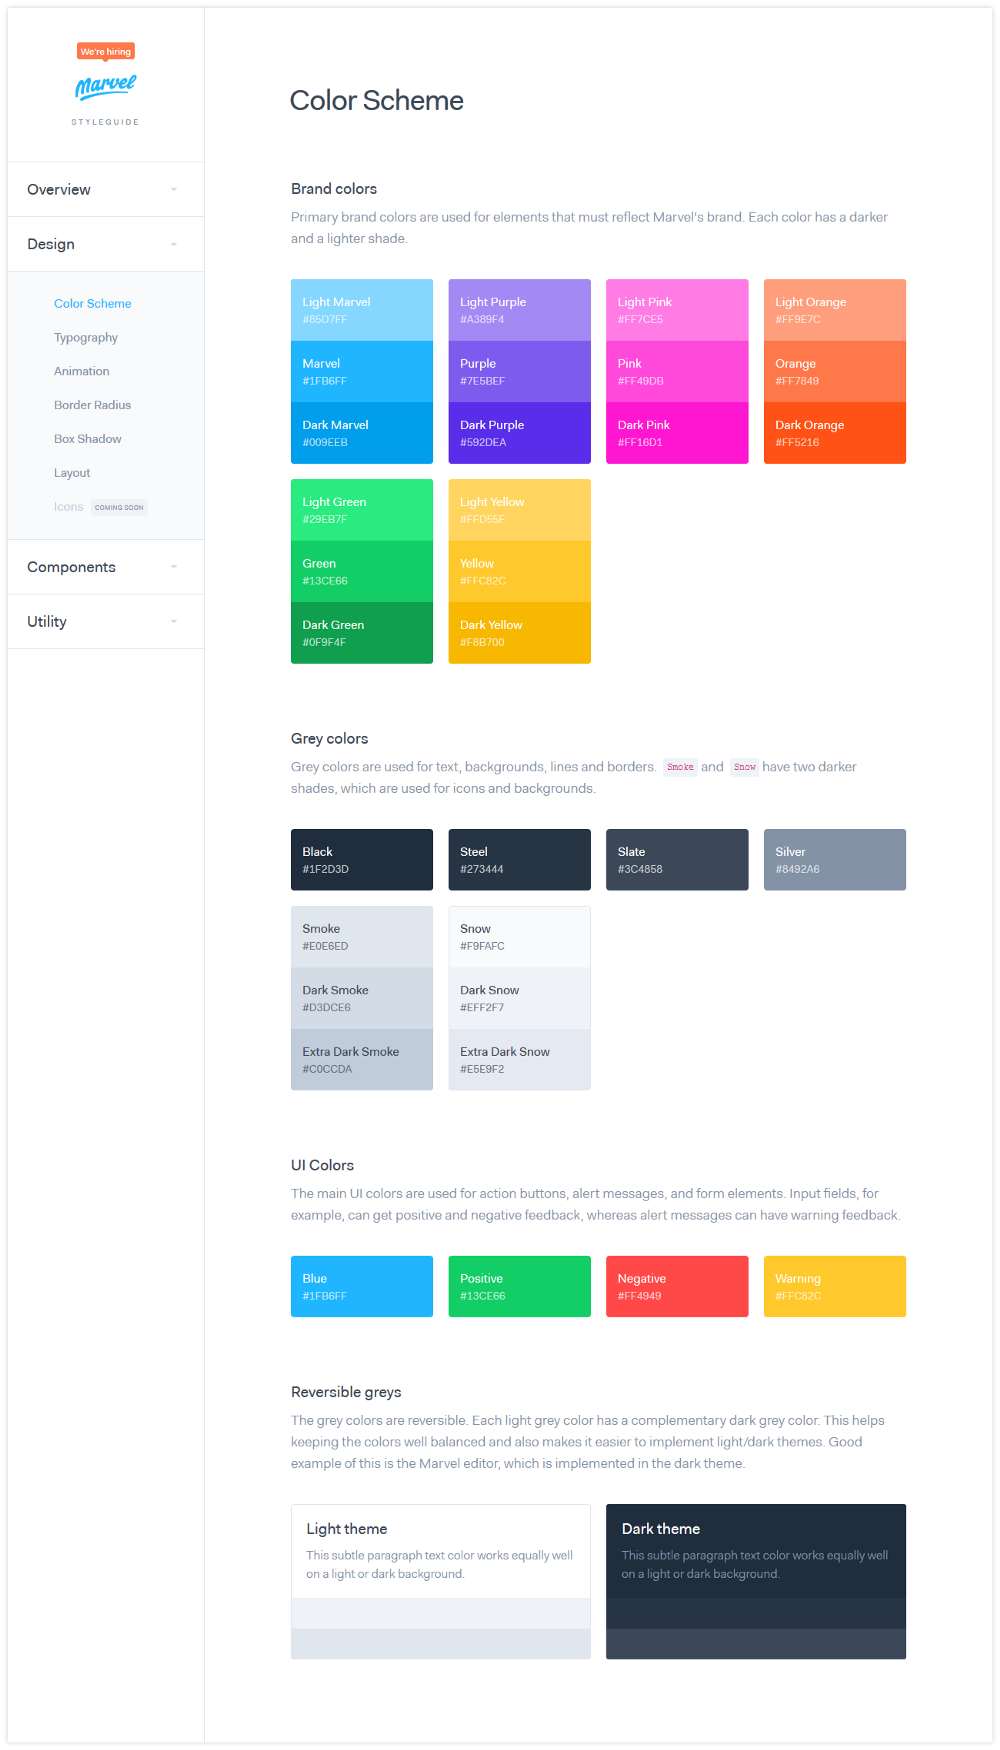 codeblick DigitalerStyleguide ColorScheme